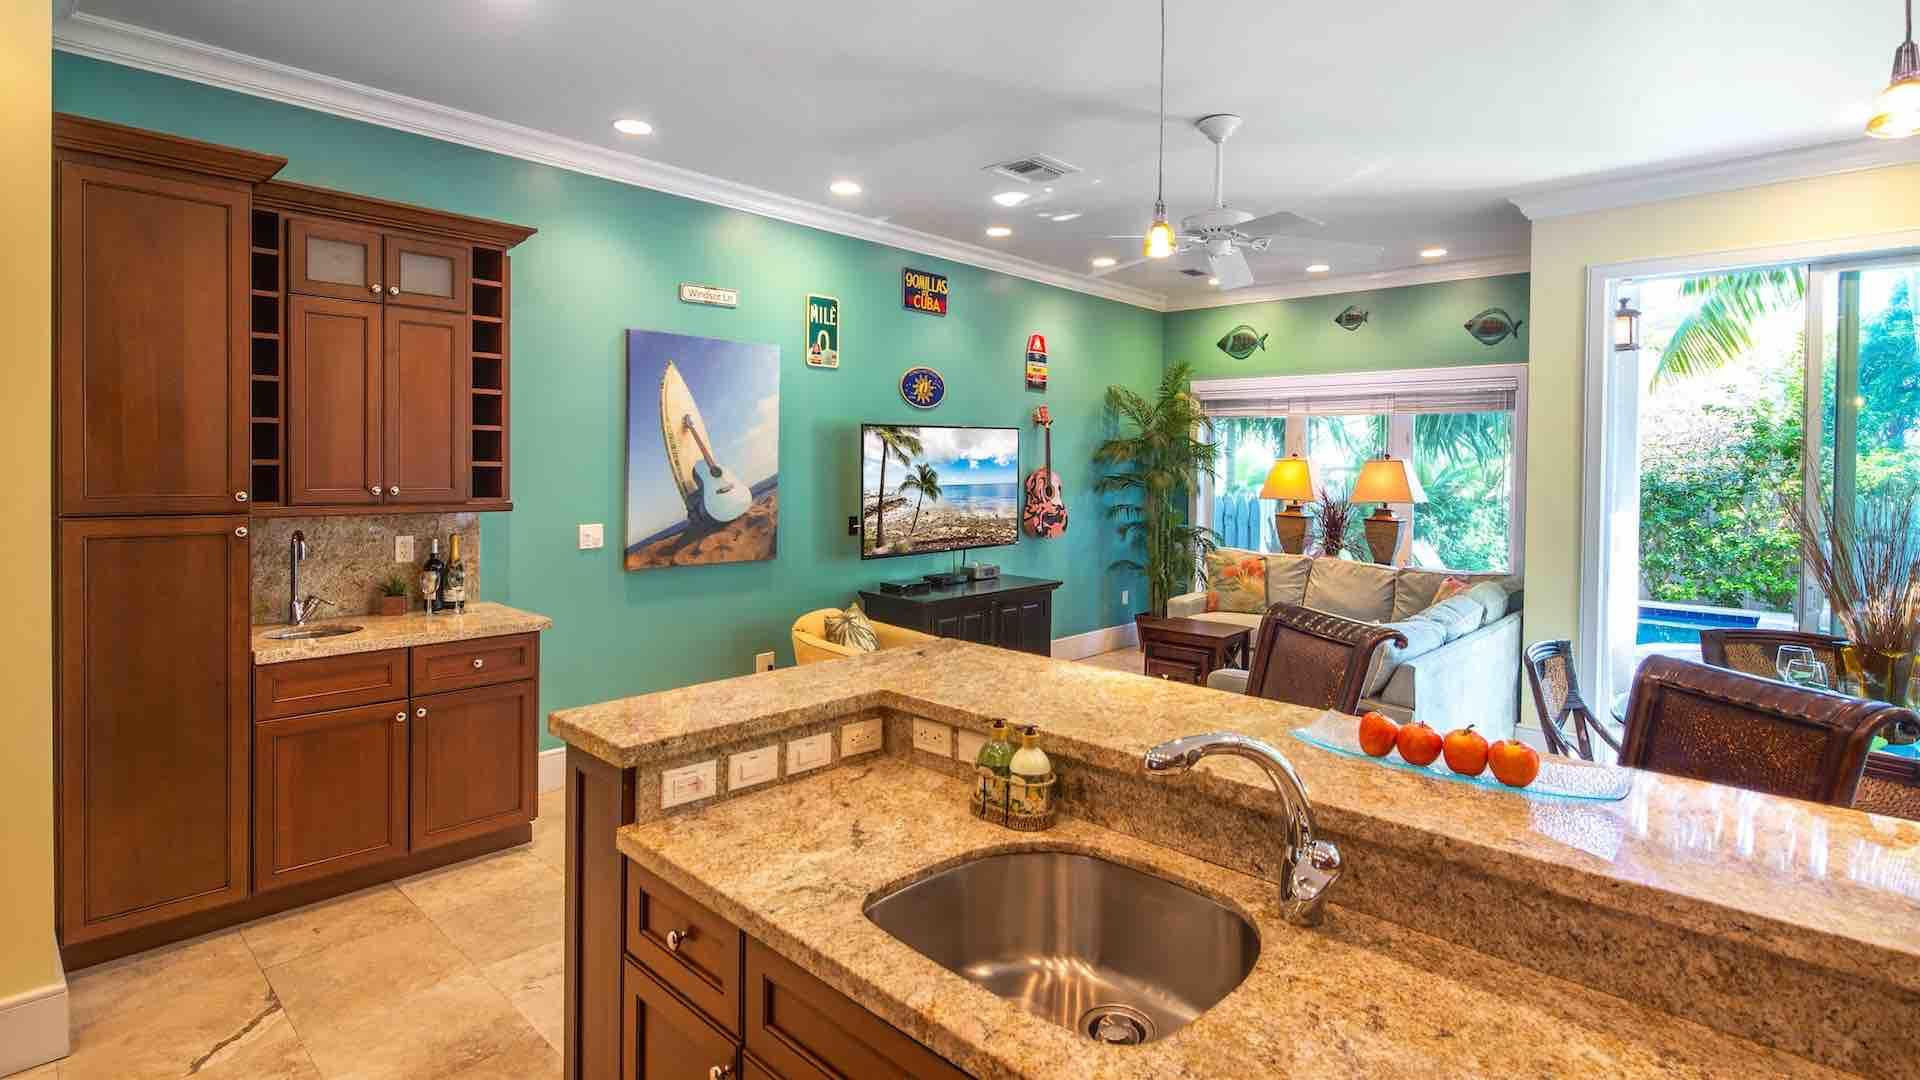 There is also a wet bar in each home, complete with the full bar set up for happy hour your way...